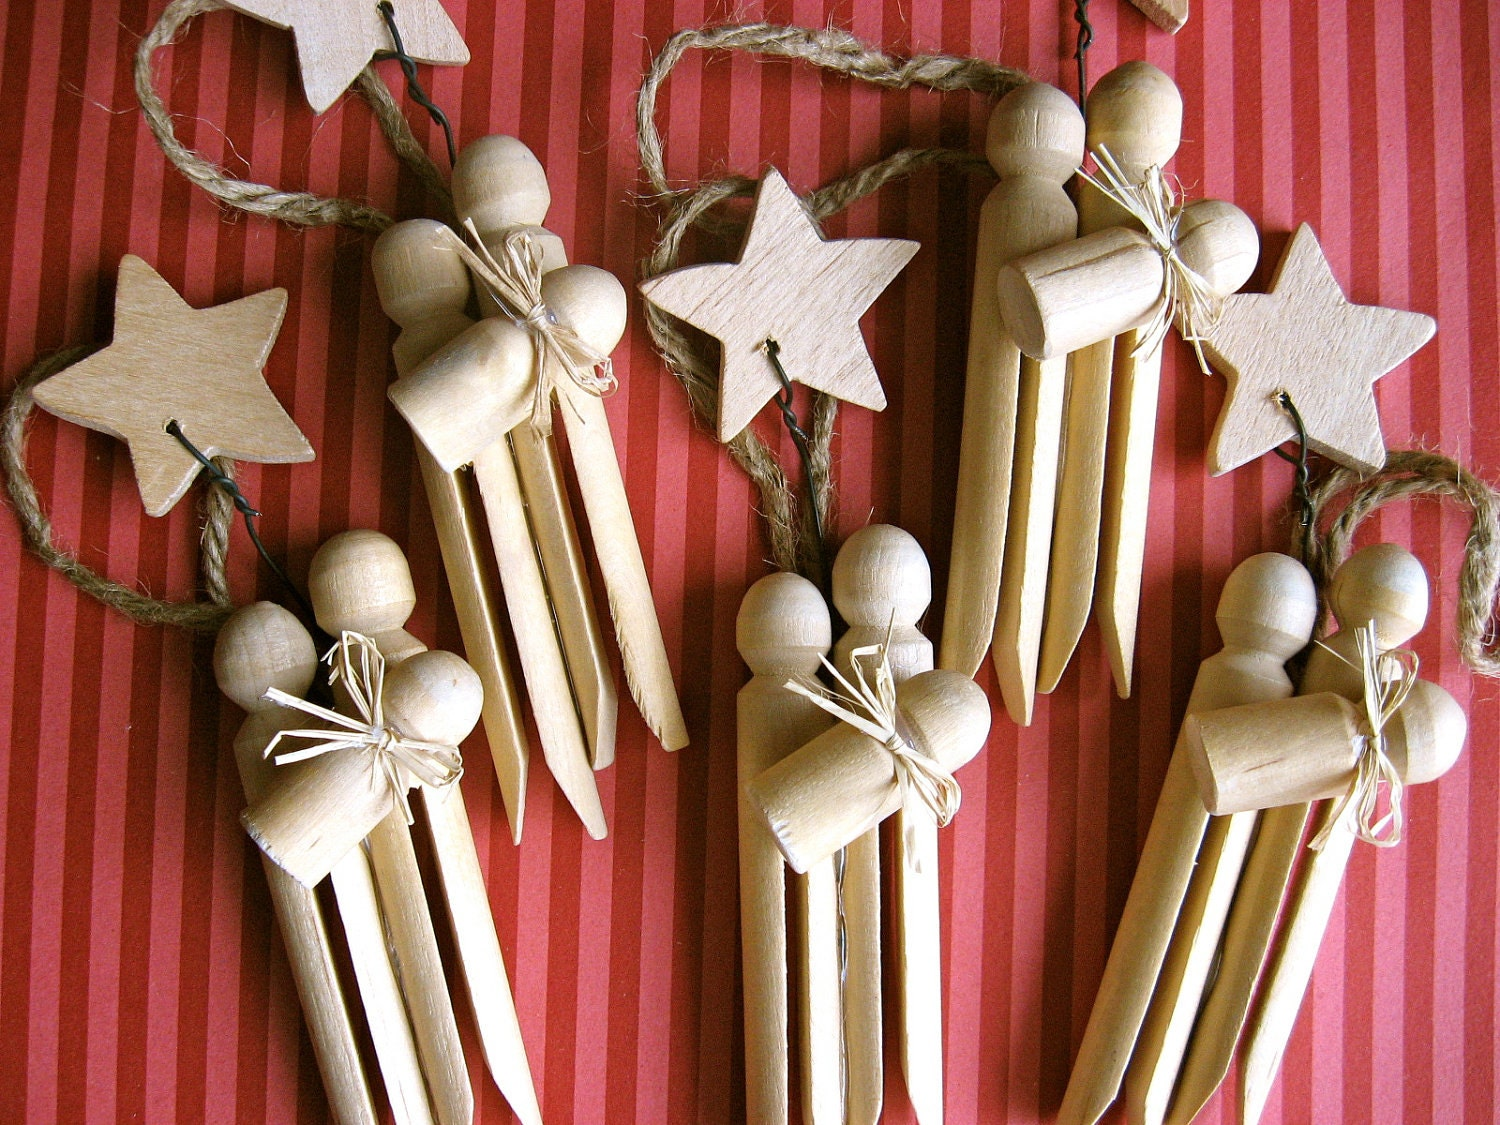 25 Handmade Christmas Ideas - The 36th AVENUE